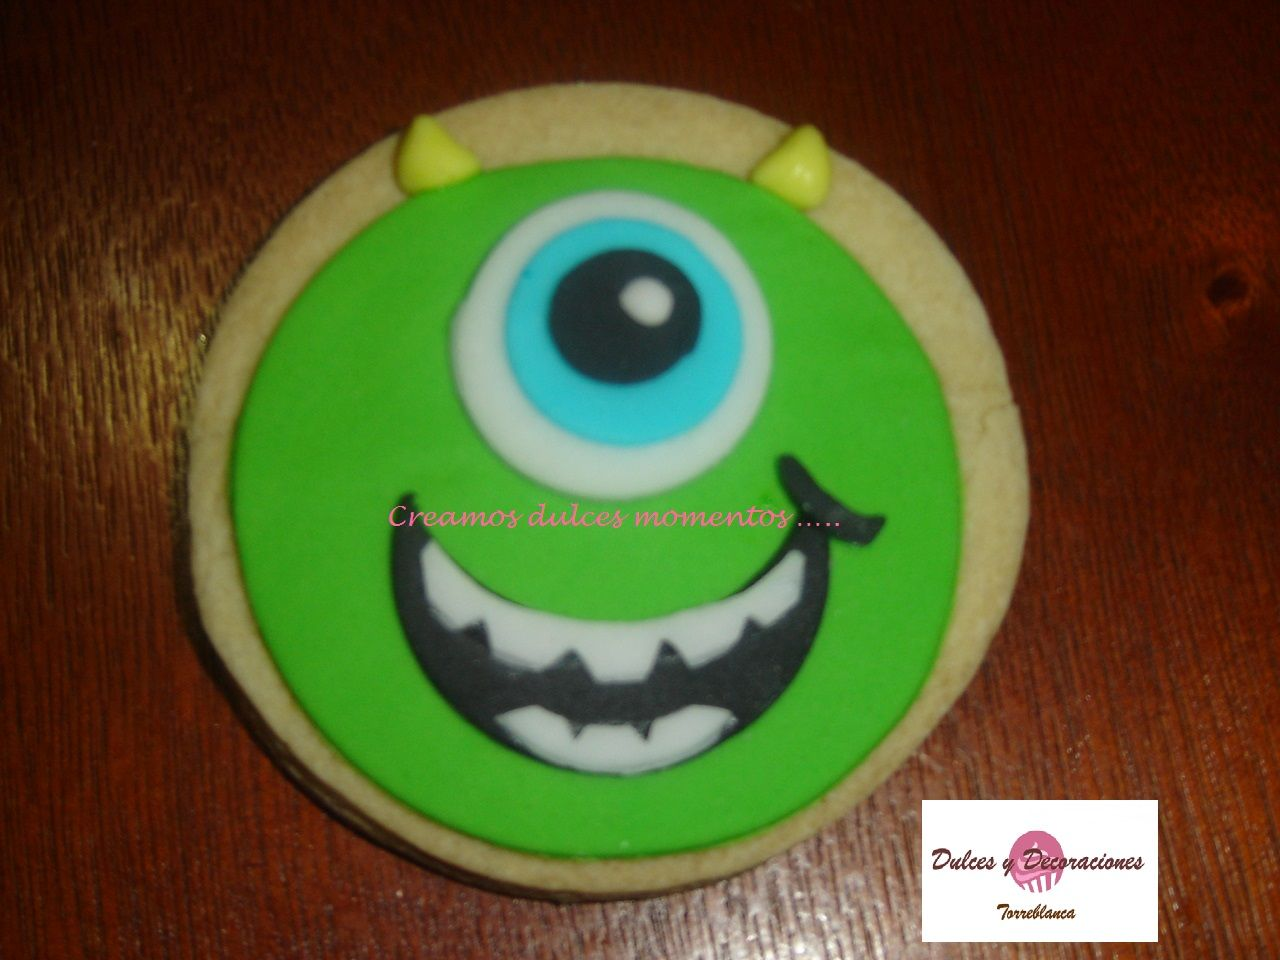 Precio De Galletas Decoradas Galleta De Mantequilla Con Fondant De Monster Inc Informes